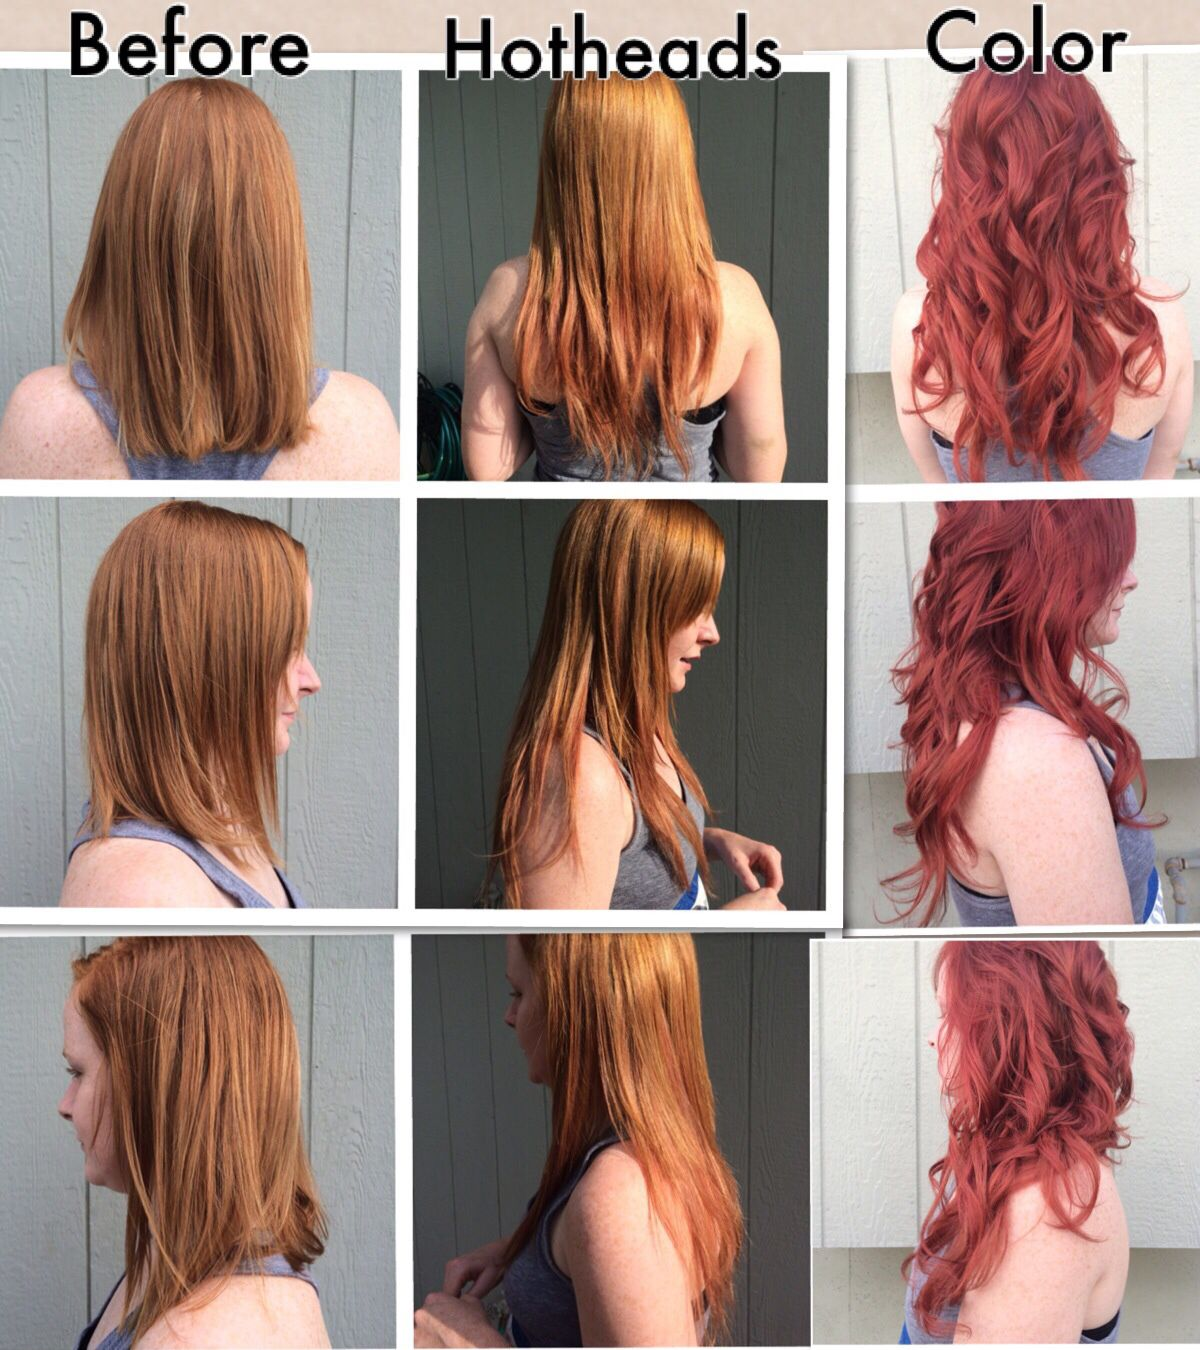 Hotheads Hair Extensions And Schwarzkopf Color Hair Nails Makeup